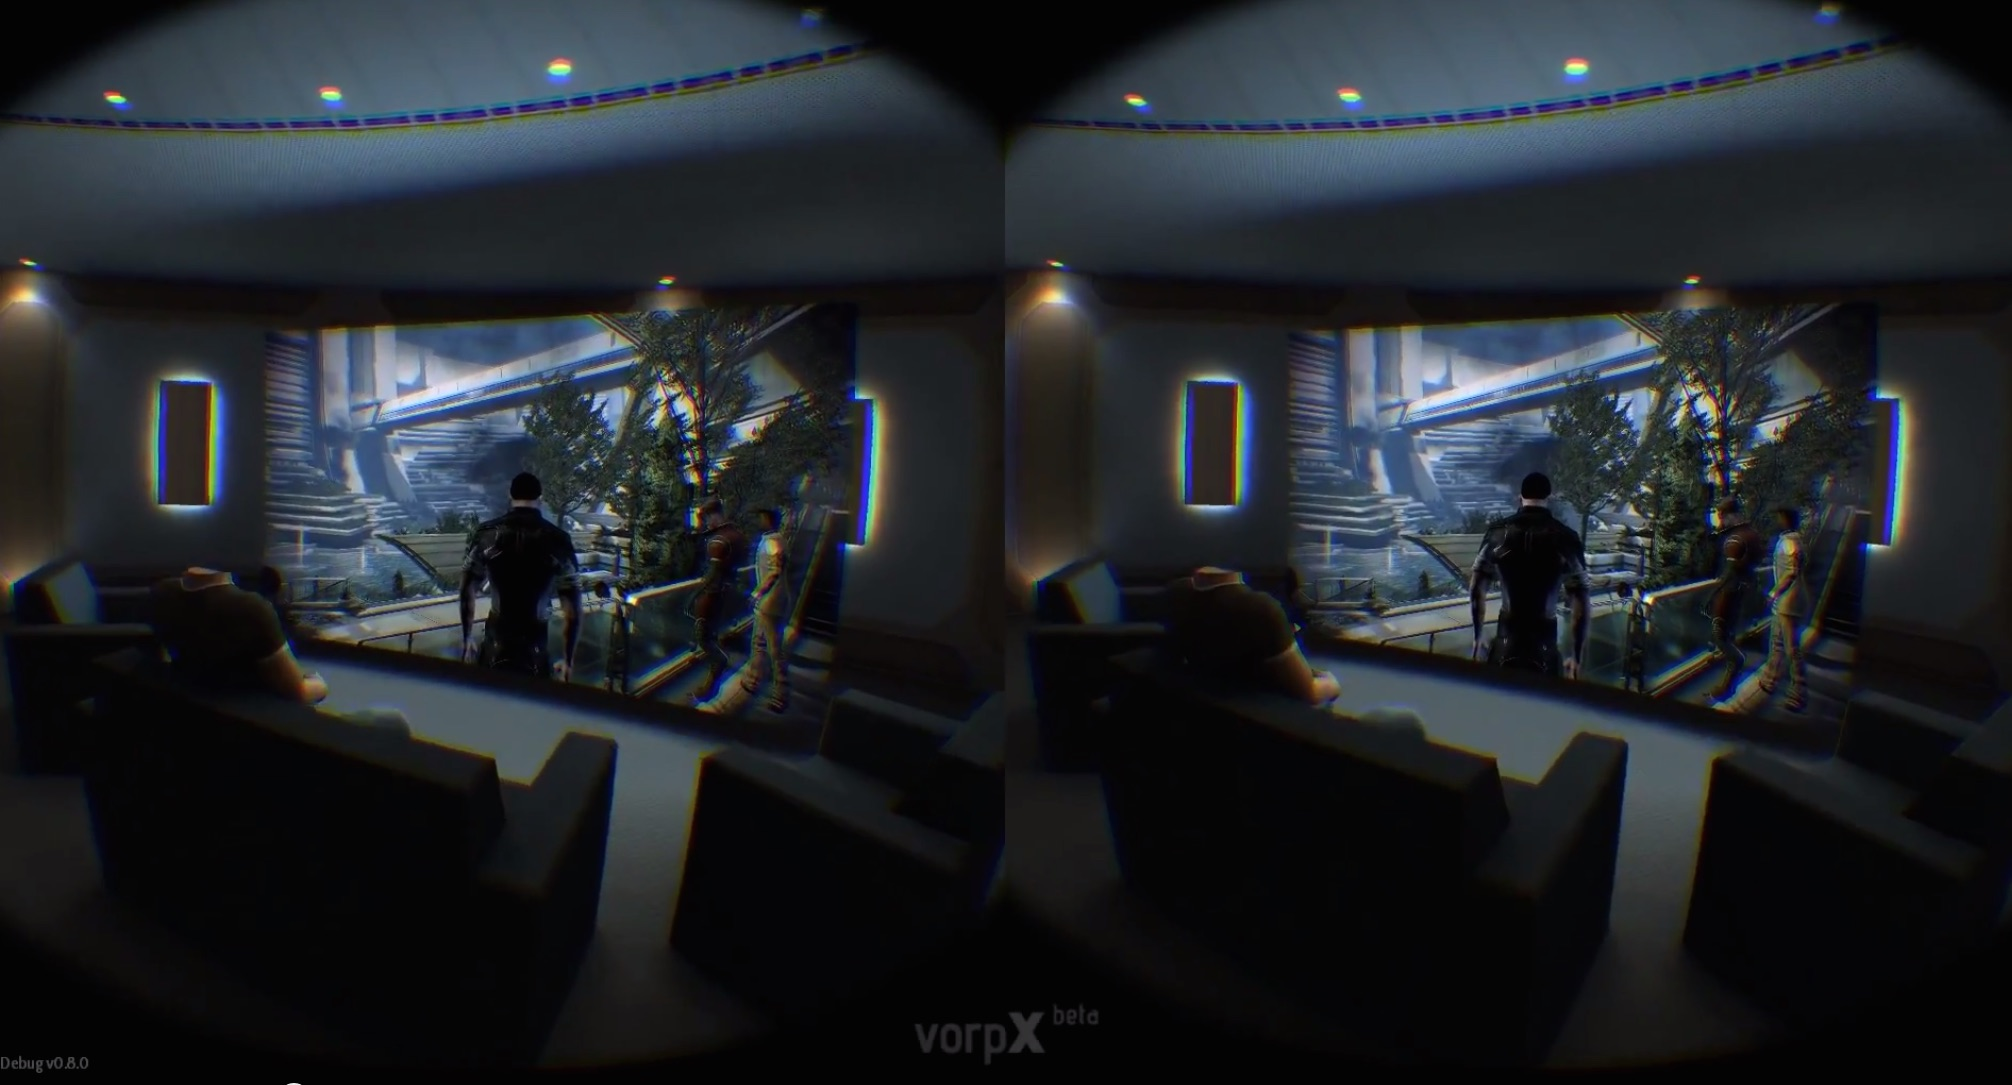 Vorpx S New Virtual Cinema Lets You Play Non Vr Games On A